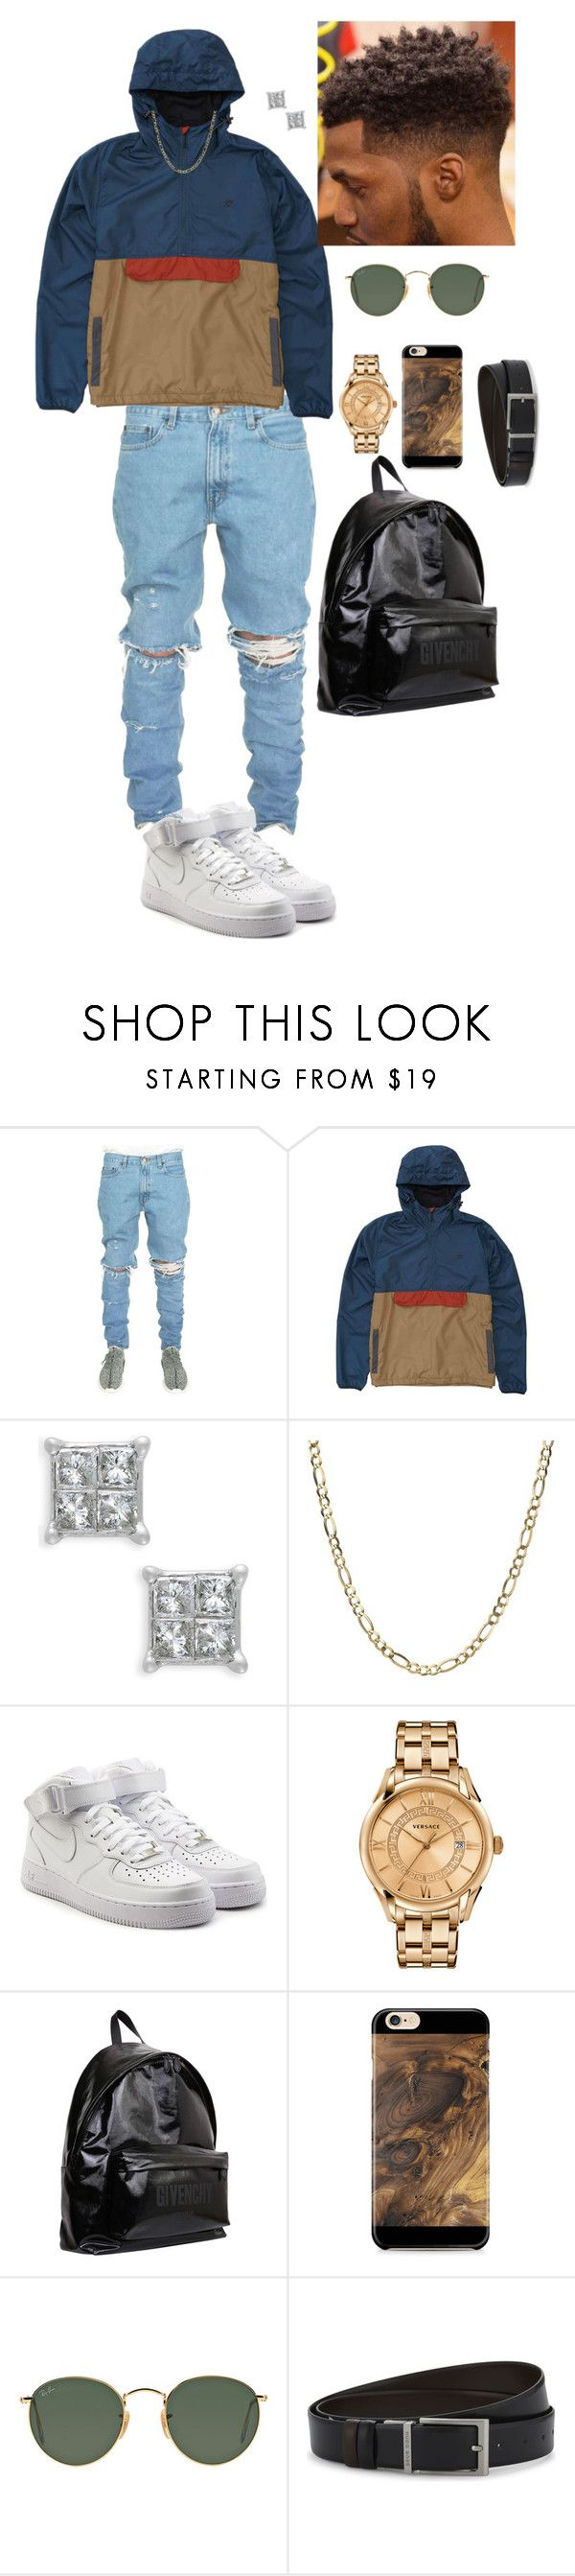 """""""Untitled #923"""" by medinea ❤ liked on Polyvore featuring Billabong, NIKE, Versace, Givenchy, Samsung, Ray-Ban, HUGO, men's fashion and menswear"""